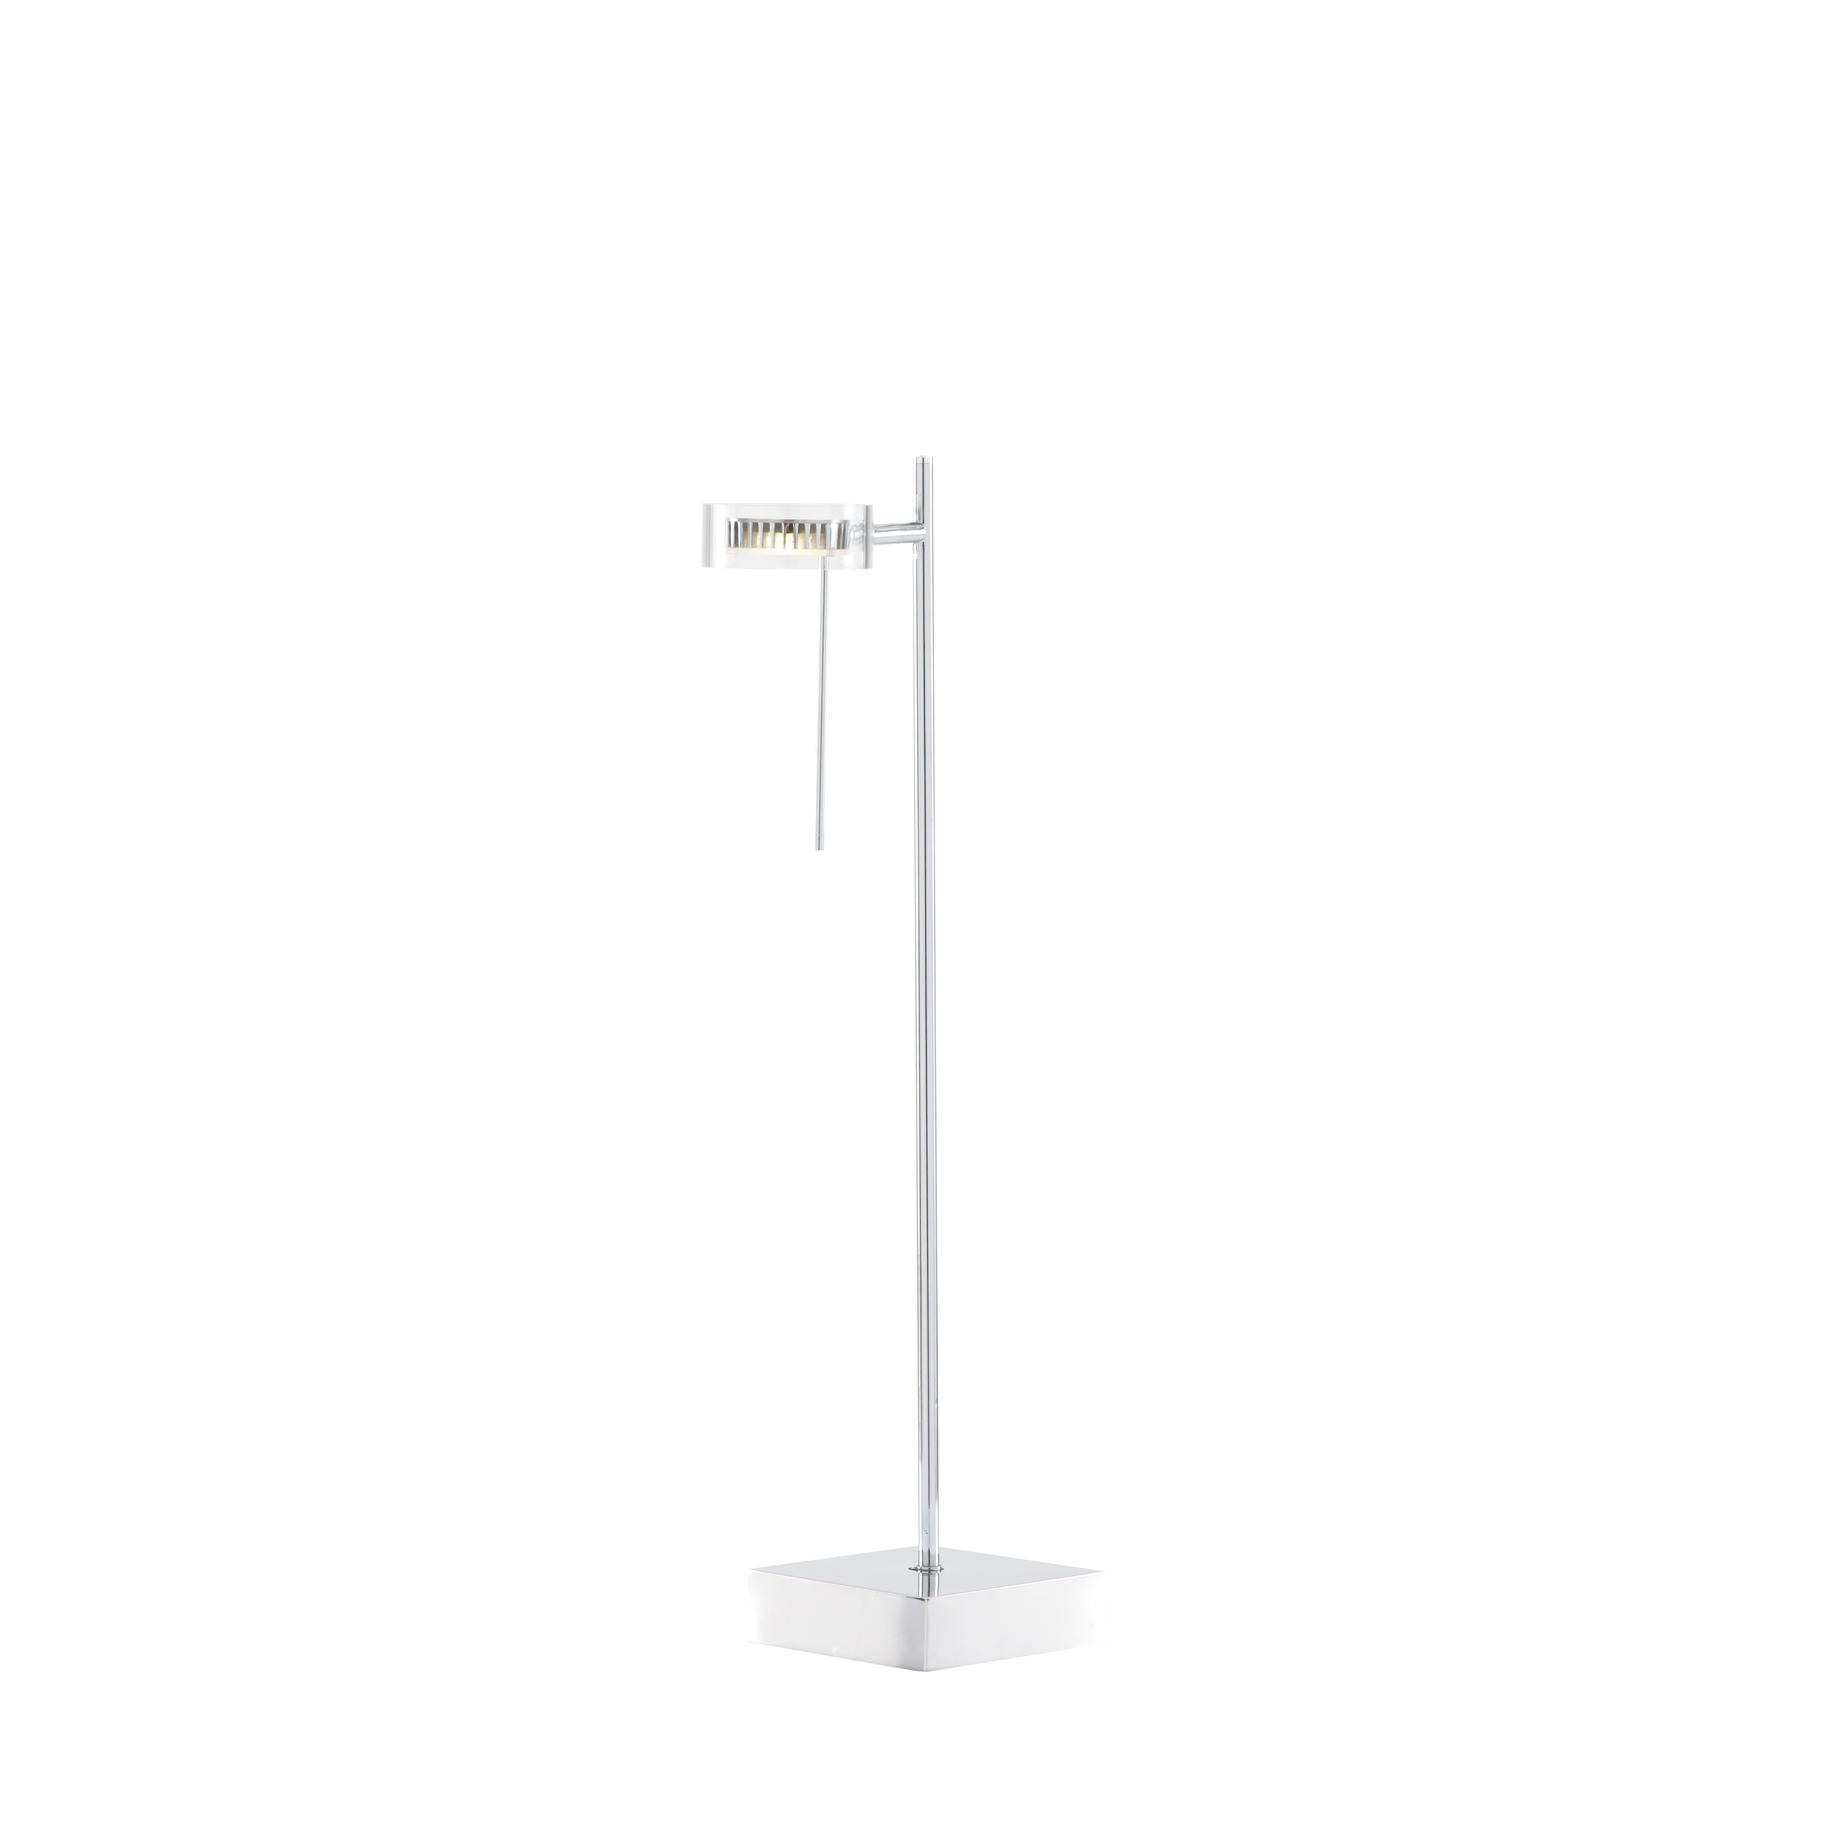 READING LAMP PENDING UL APPROVAL  Ligne Roset